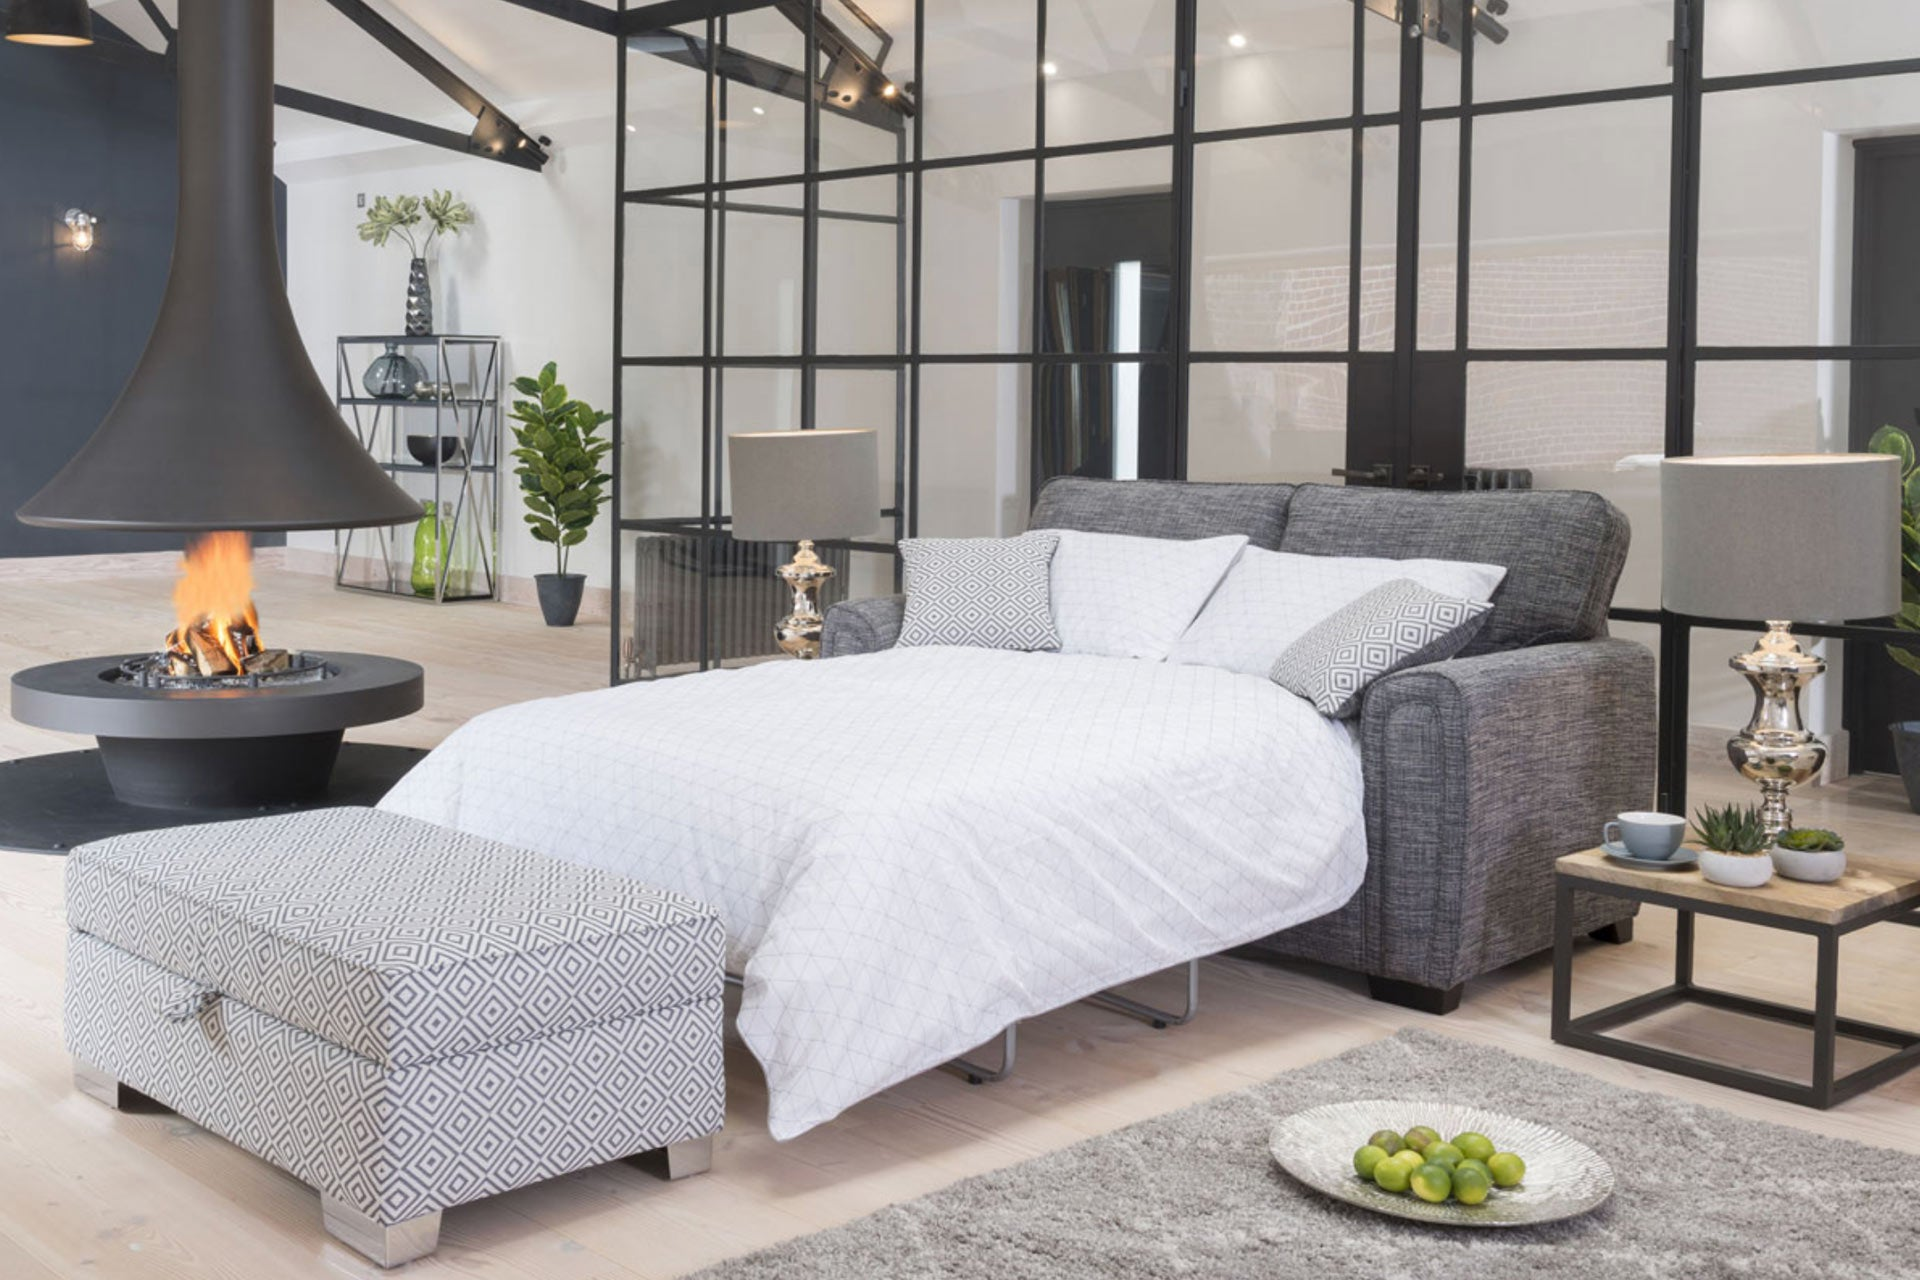 Alstons Beds collection